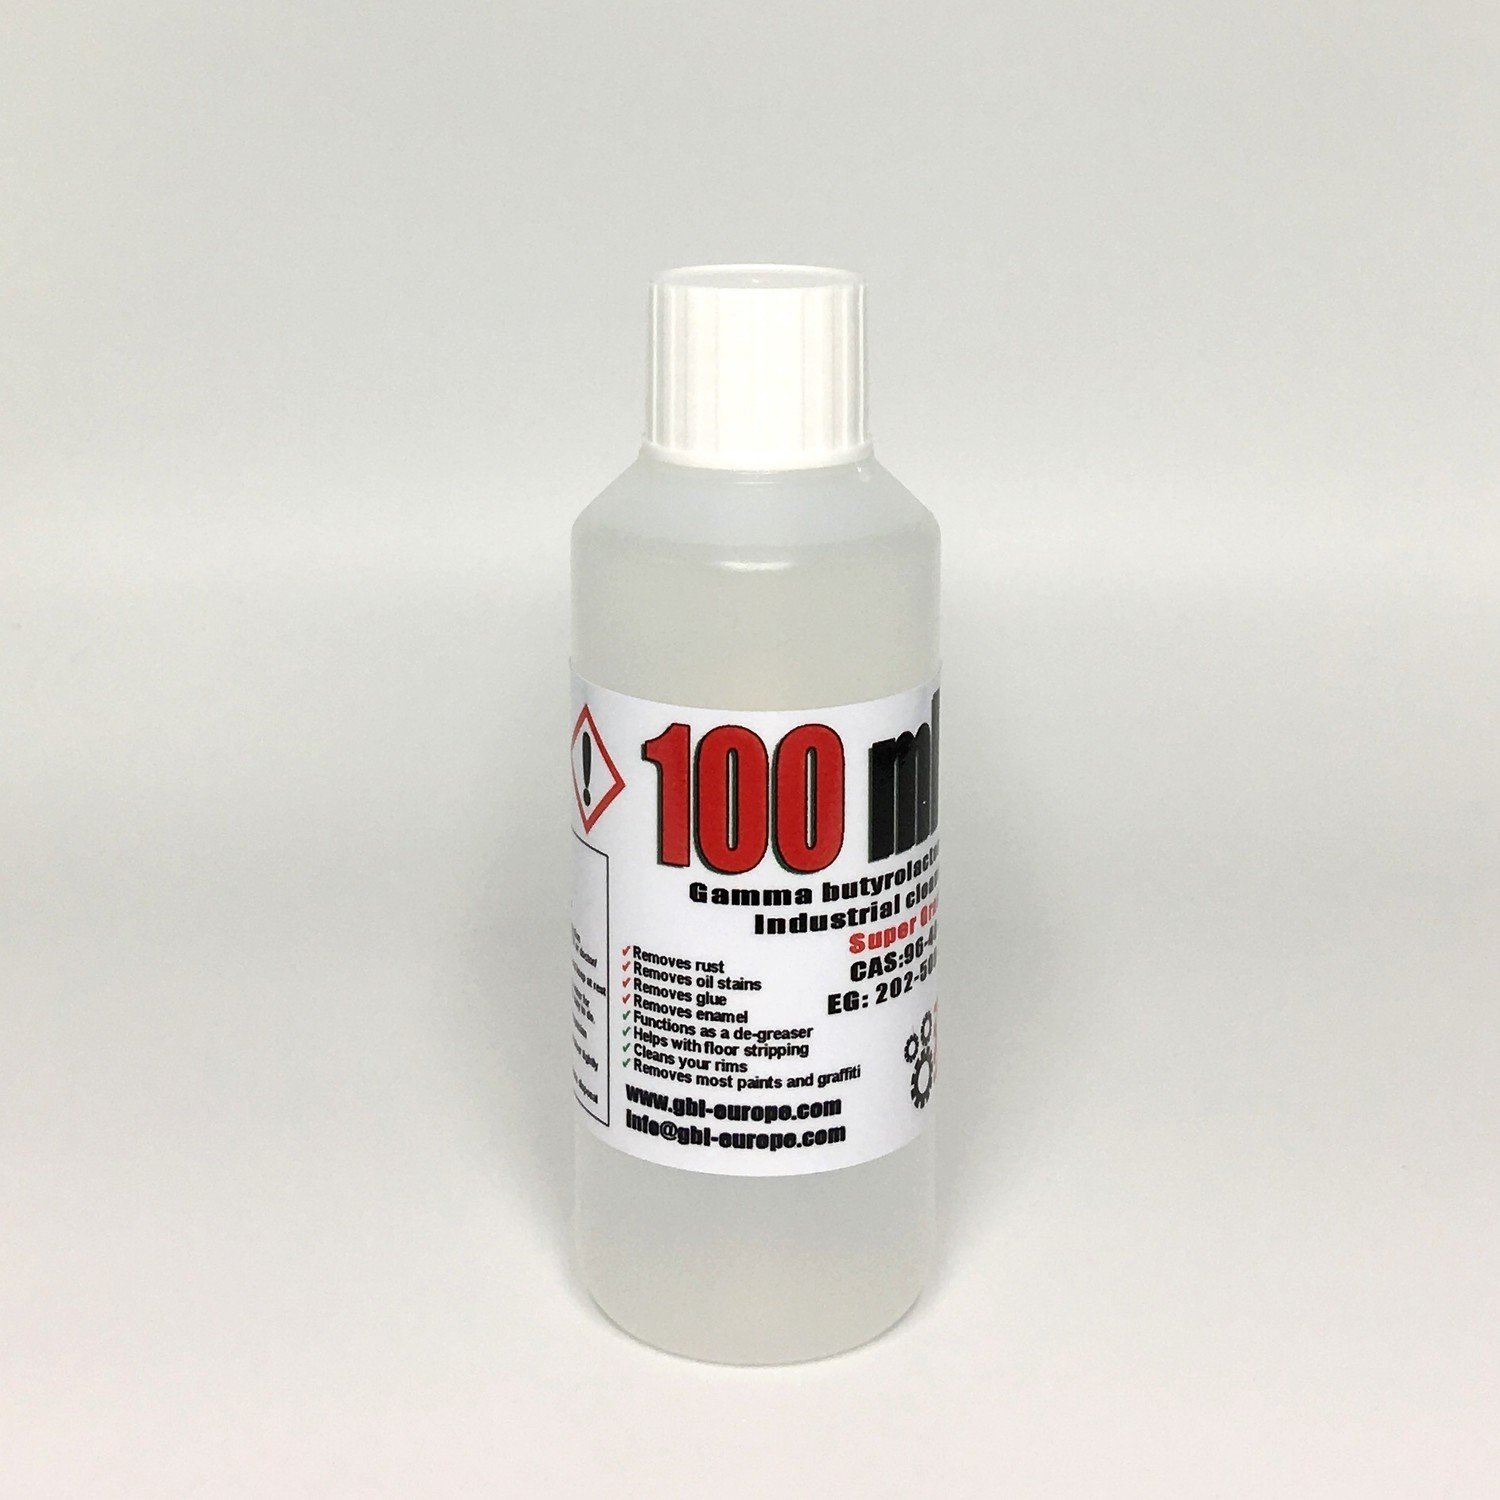 Multi Remover 100 ml Super Grade Quality + with every order 1x 500 ml technical grade Free!